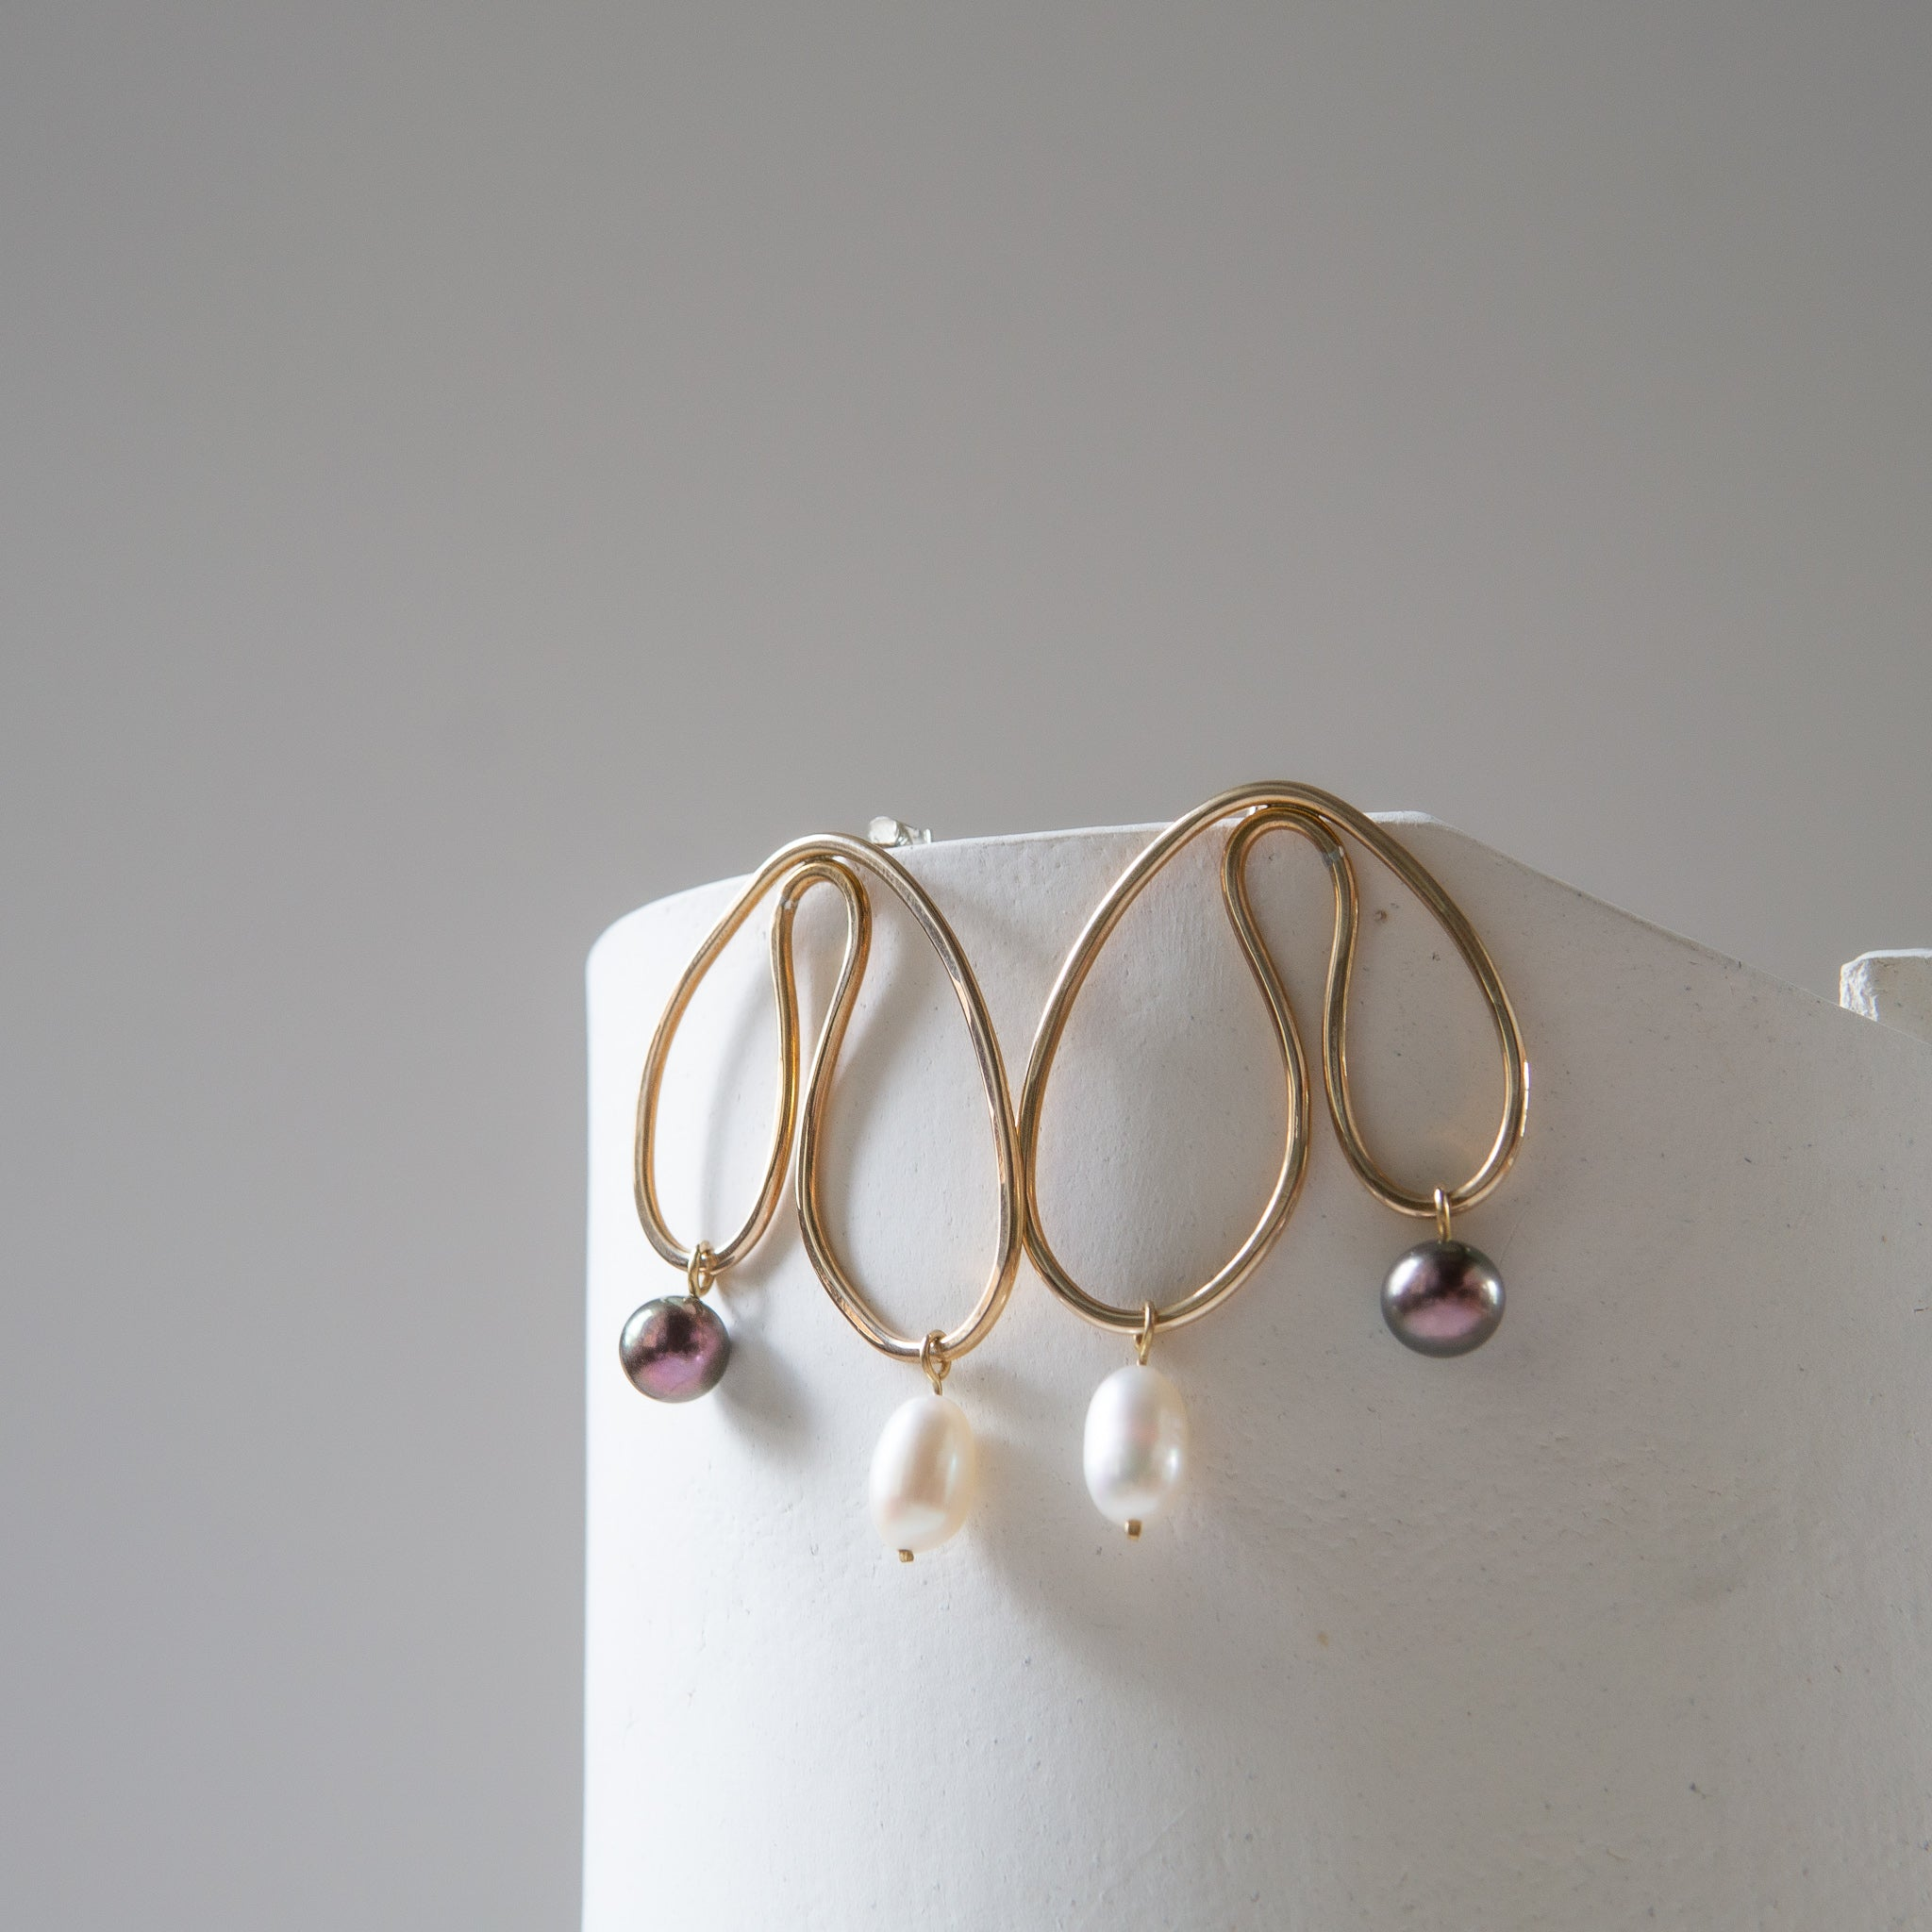 Kari Phillips: Gingillo Earrings No. 8